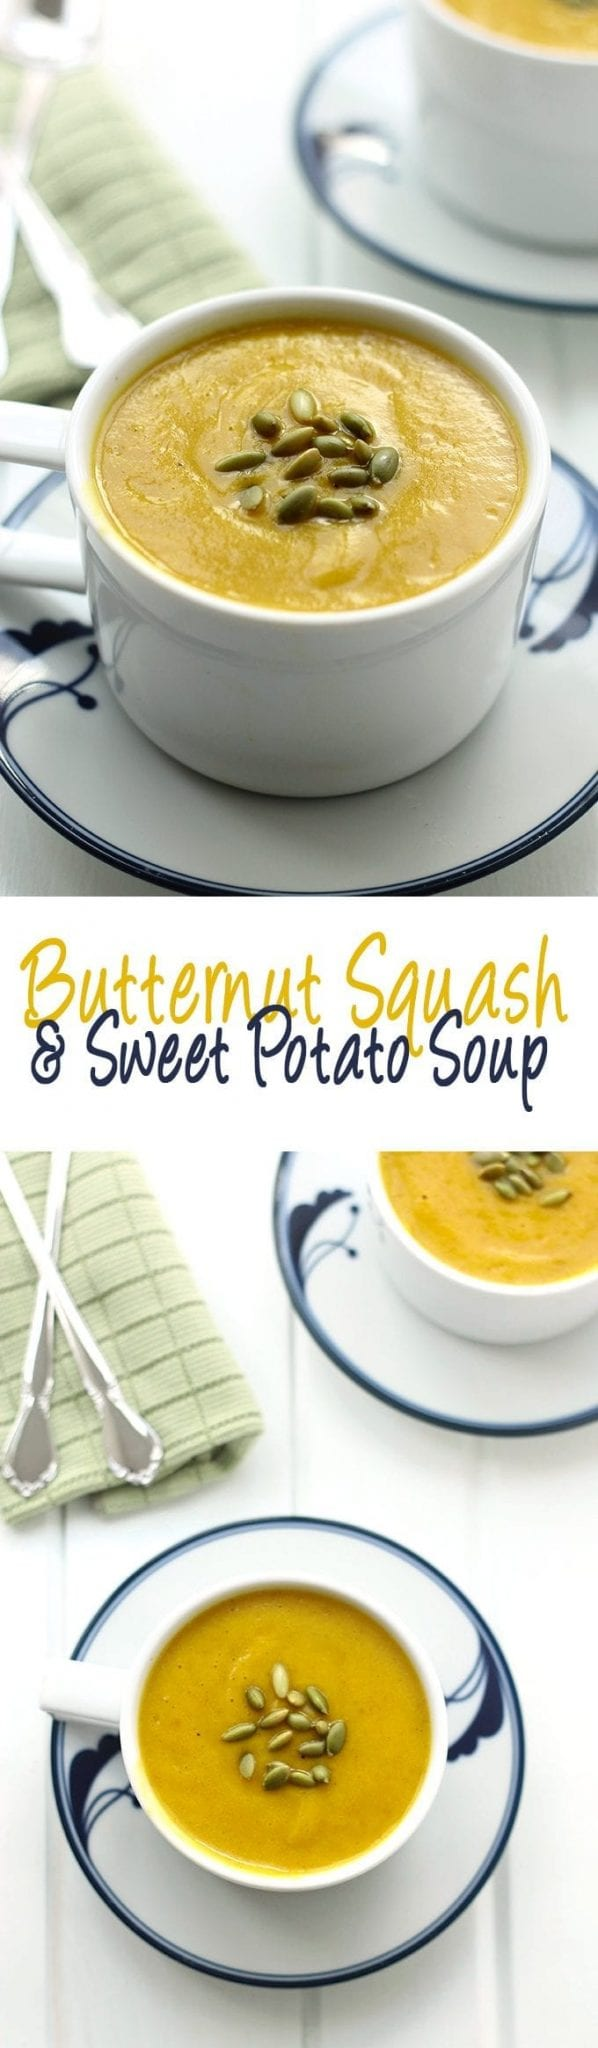 A sweet and zesty soup with the flavours of fall from butternut squash and sweet potato. This soup will keep you warm through the Fall and Winter months.